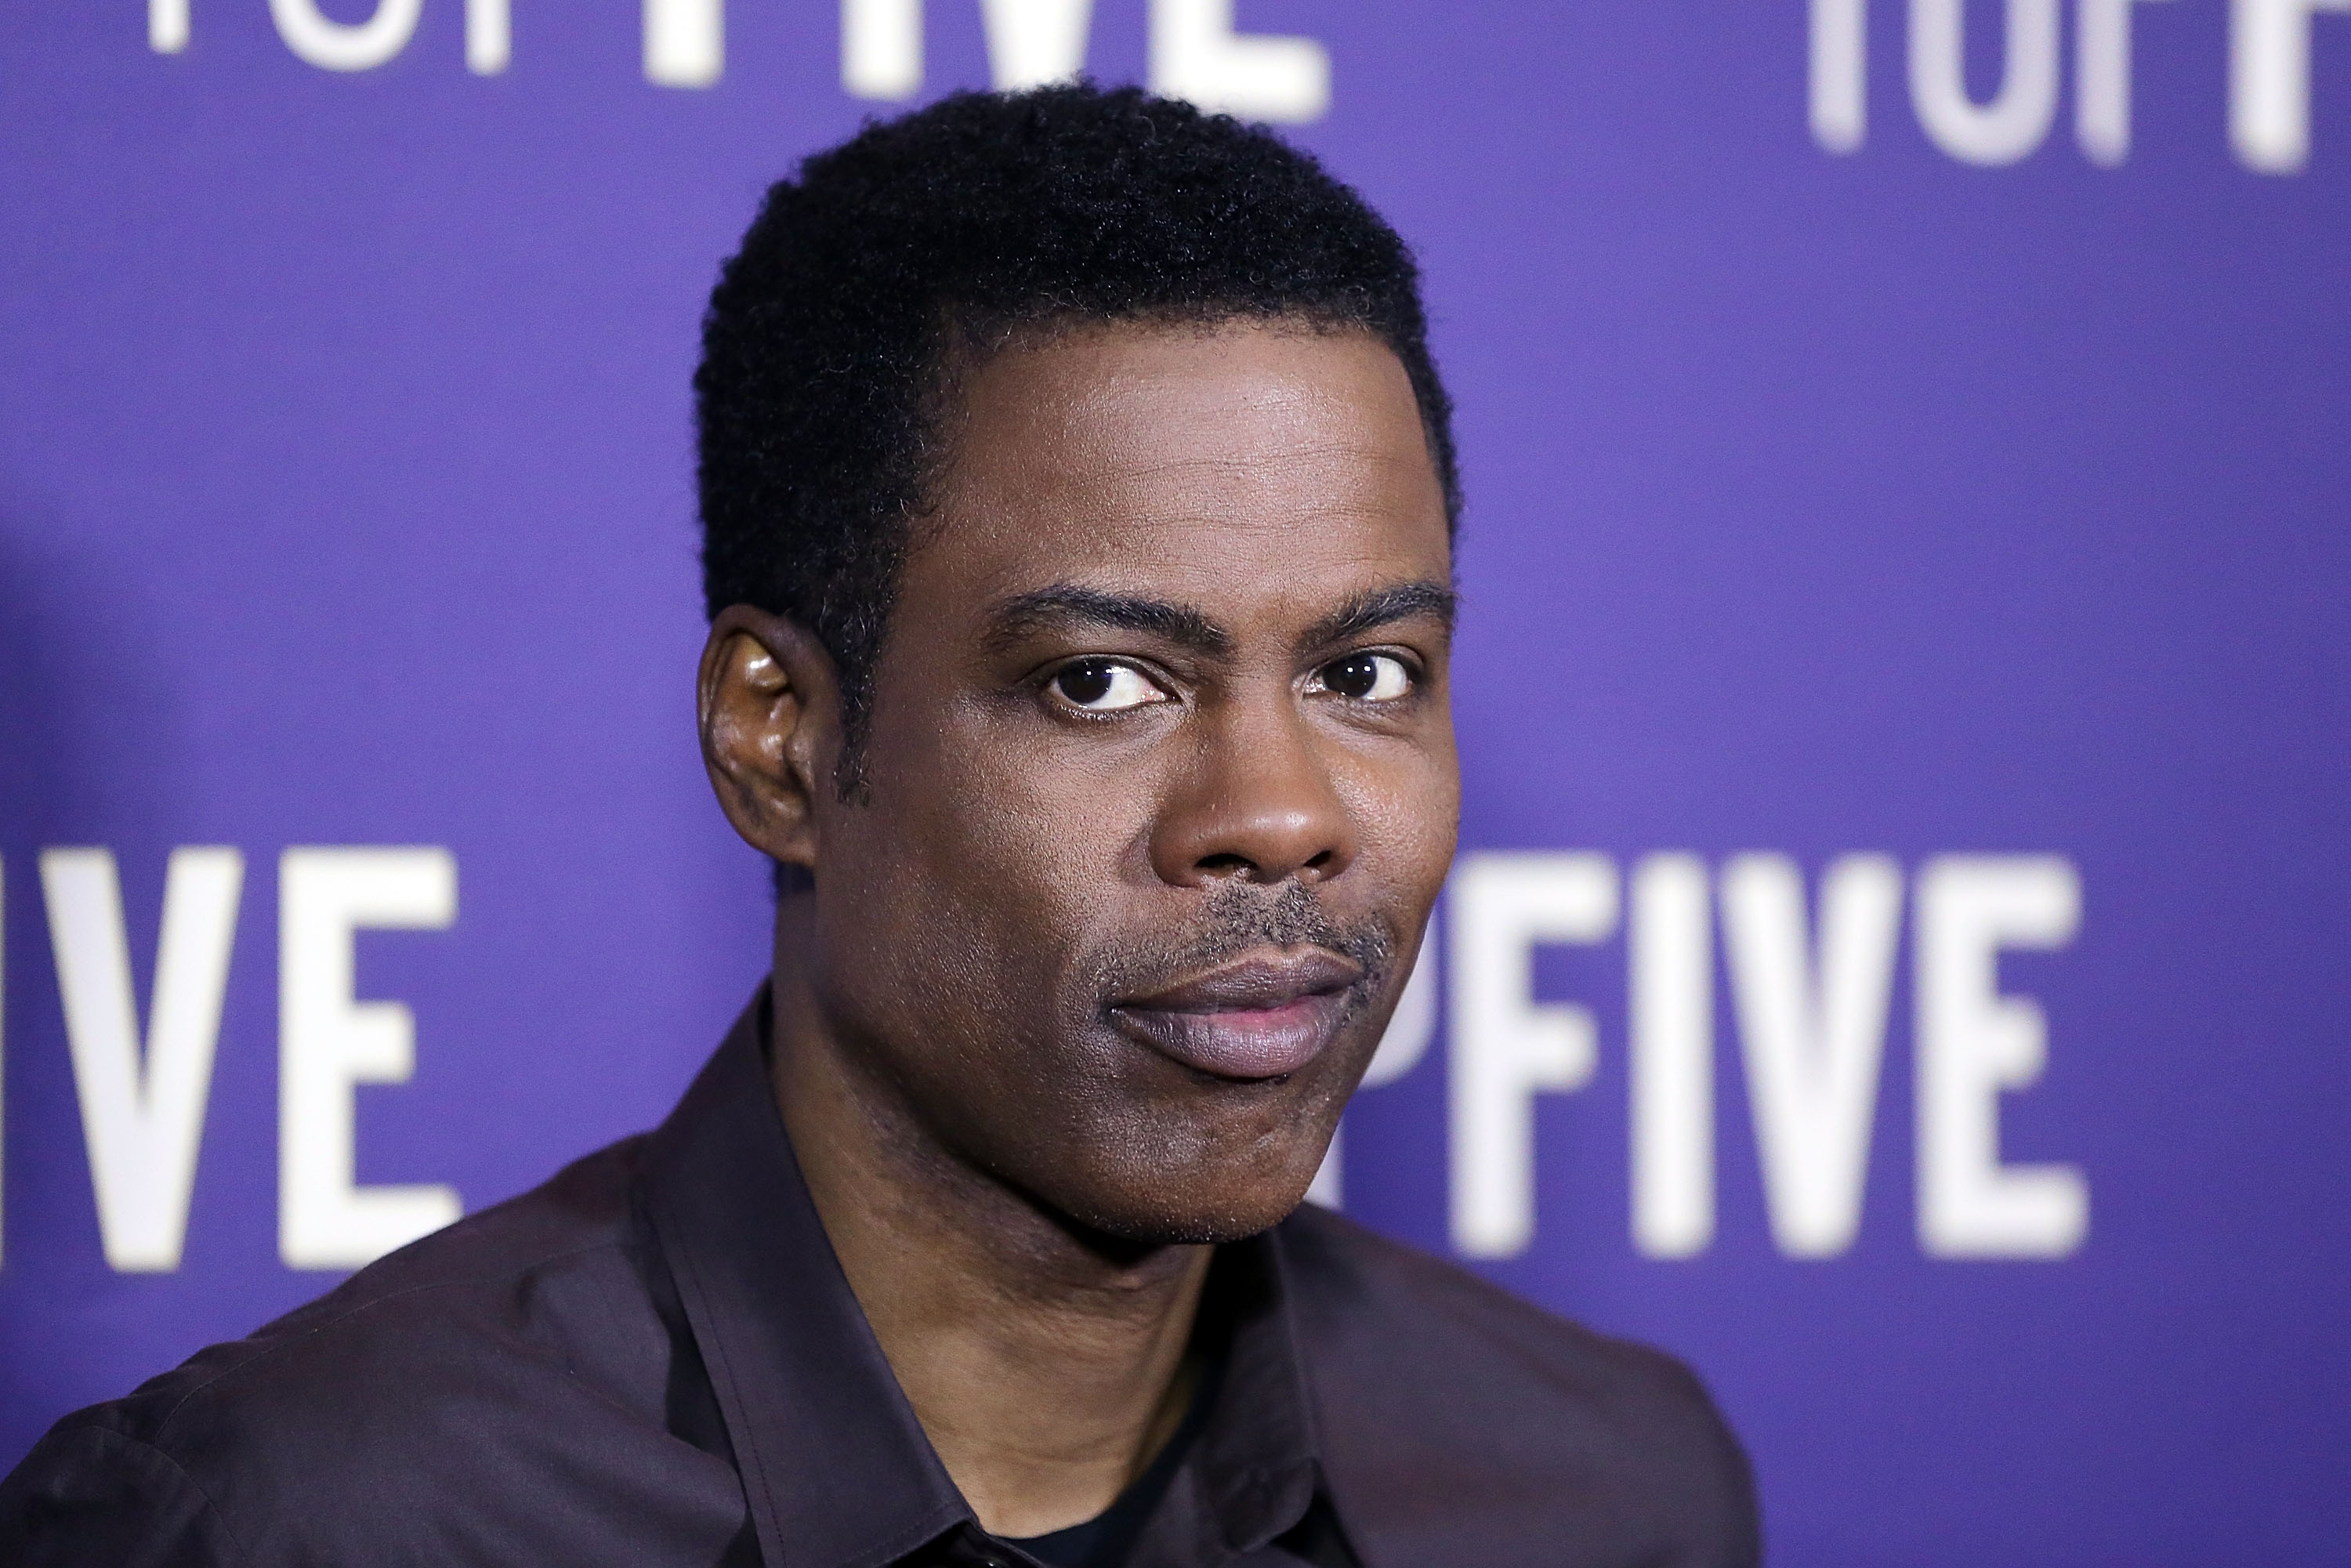 Chris Rock arrives at the  Top Five  special screening on March 4, 2015 in Sydney, Australia.